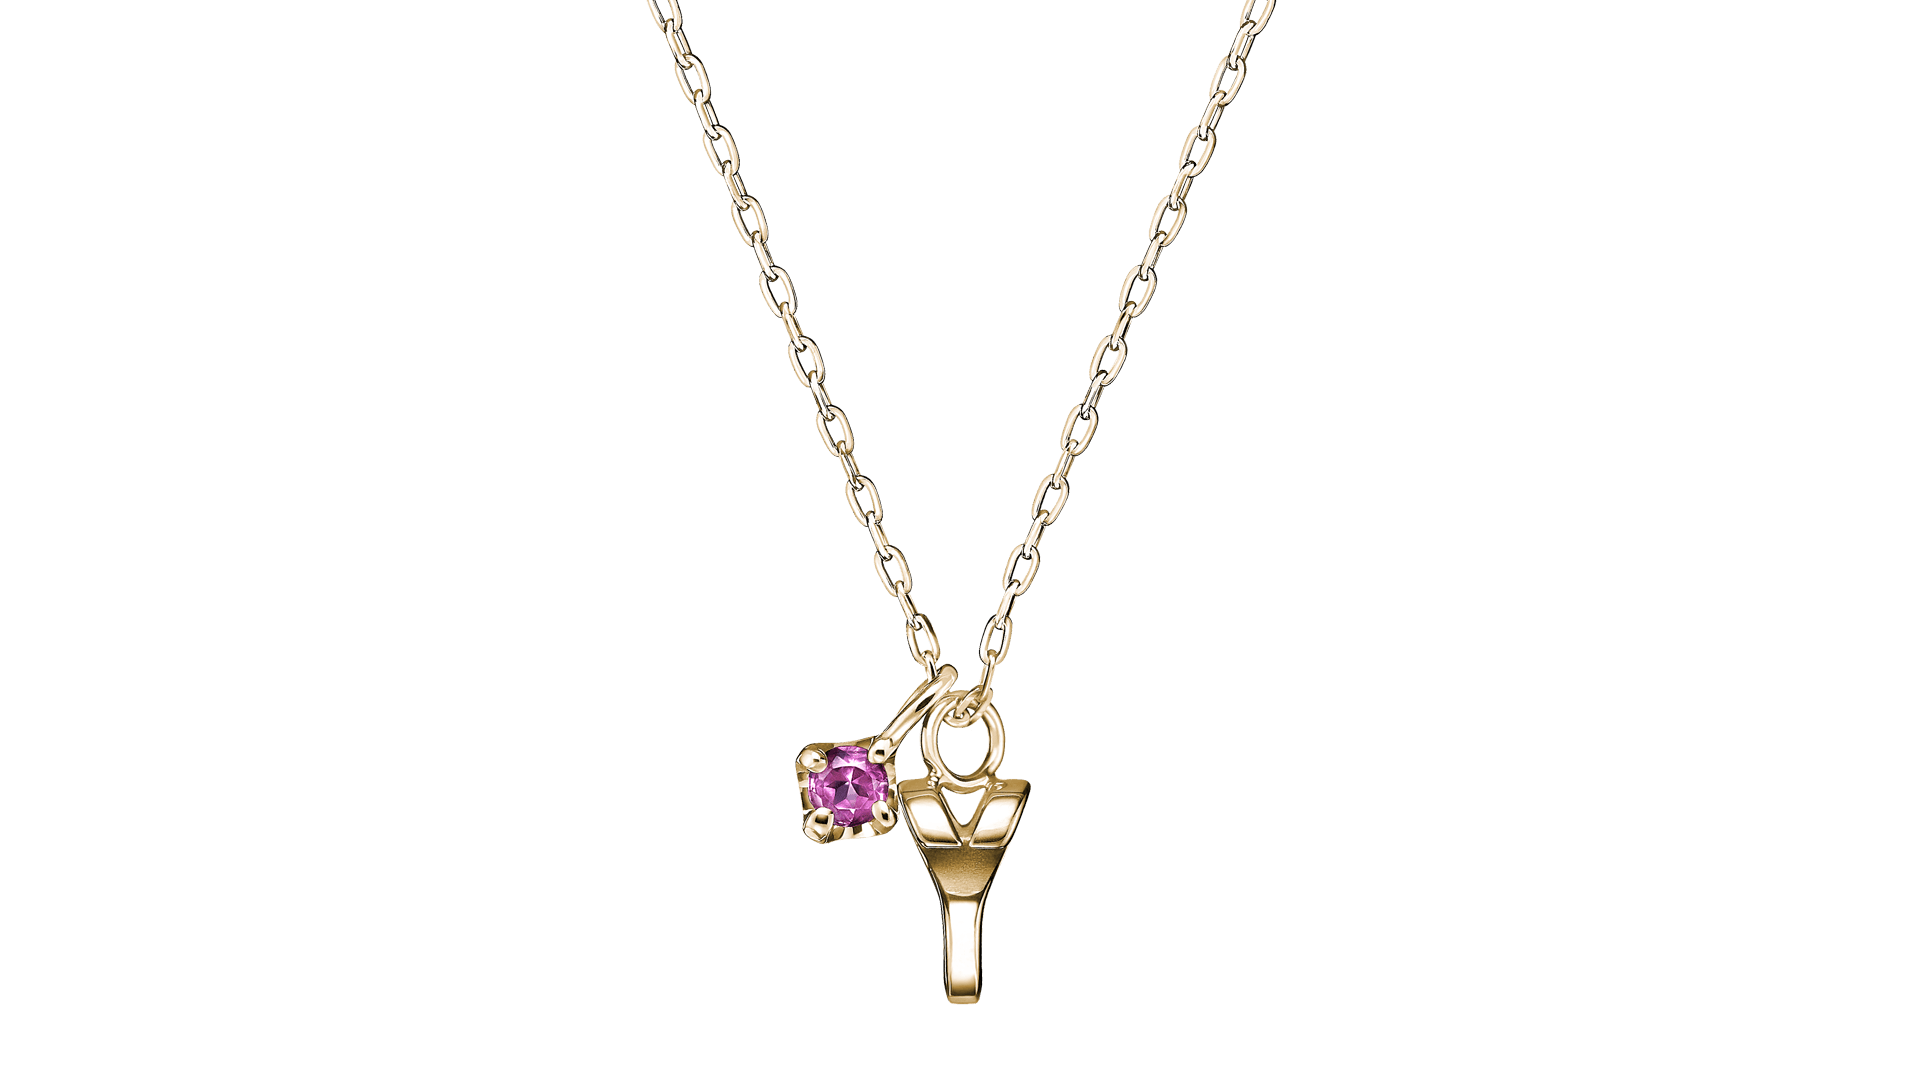 Personal Necklace パーソナルネックレス   アニバーサリージュエリーサムネイル 3